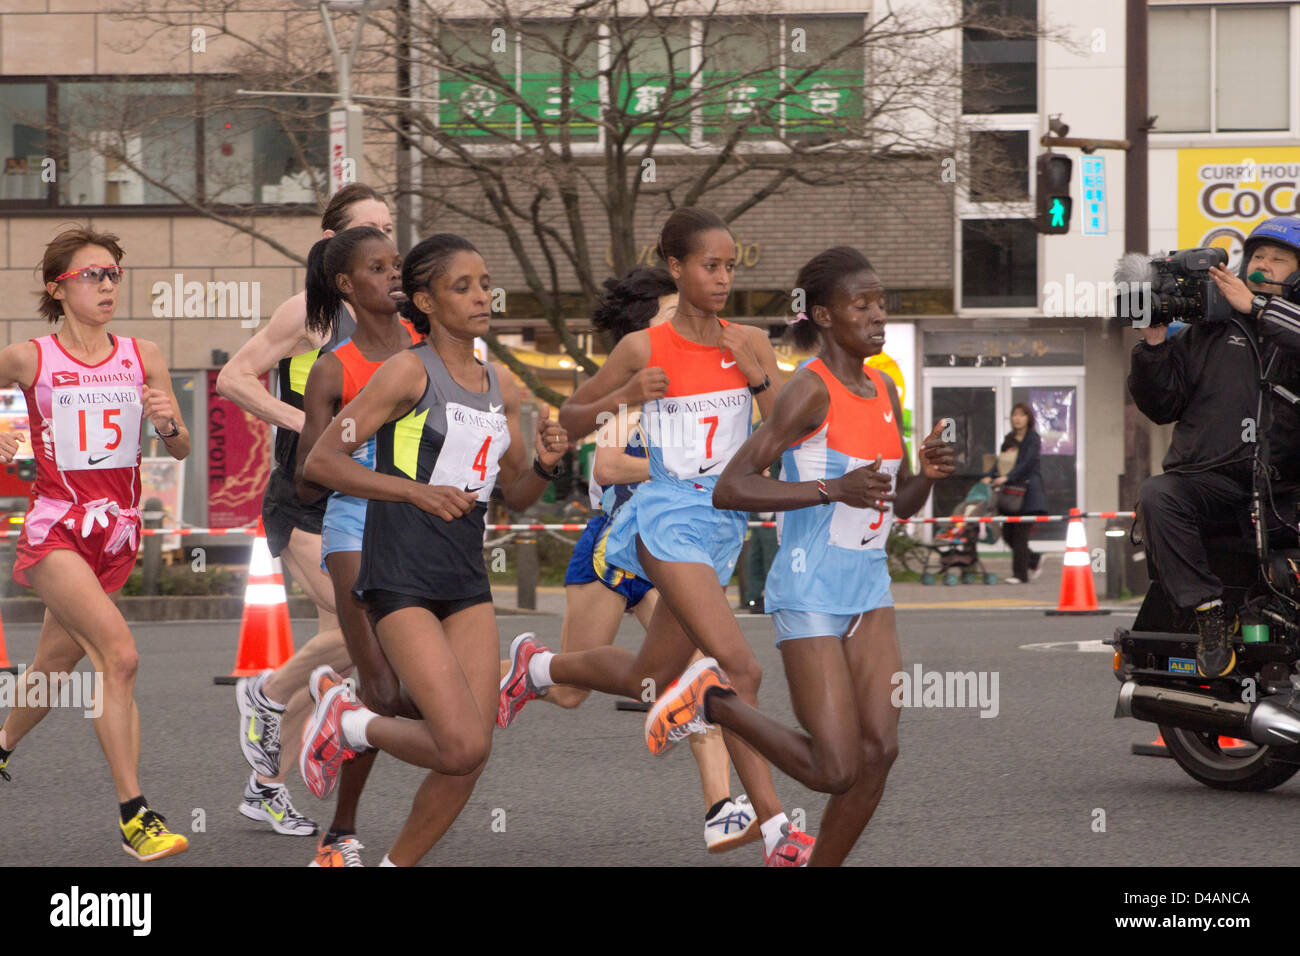 womens marathon race leaders at the 22 km poinit from right to left: margaret agai (3, kenya), berhane dibaba (7, - Stock Image